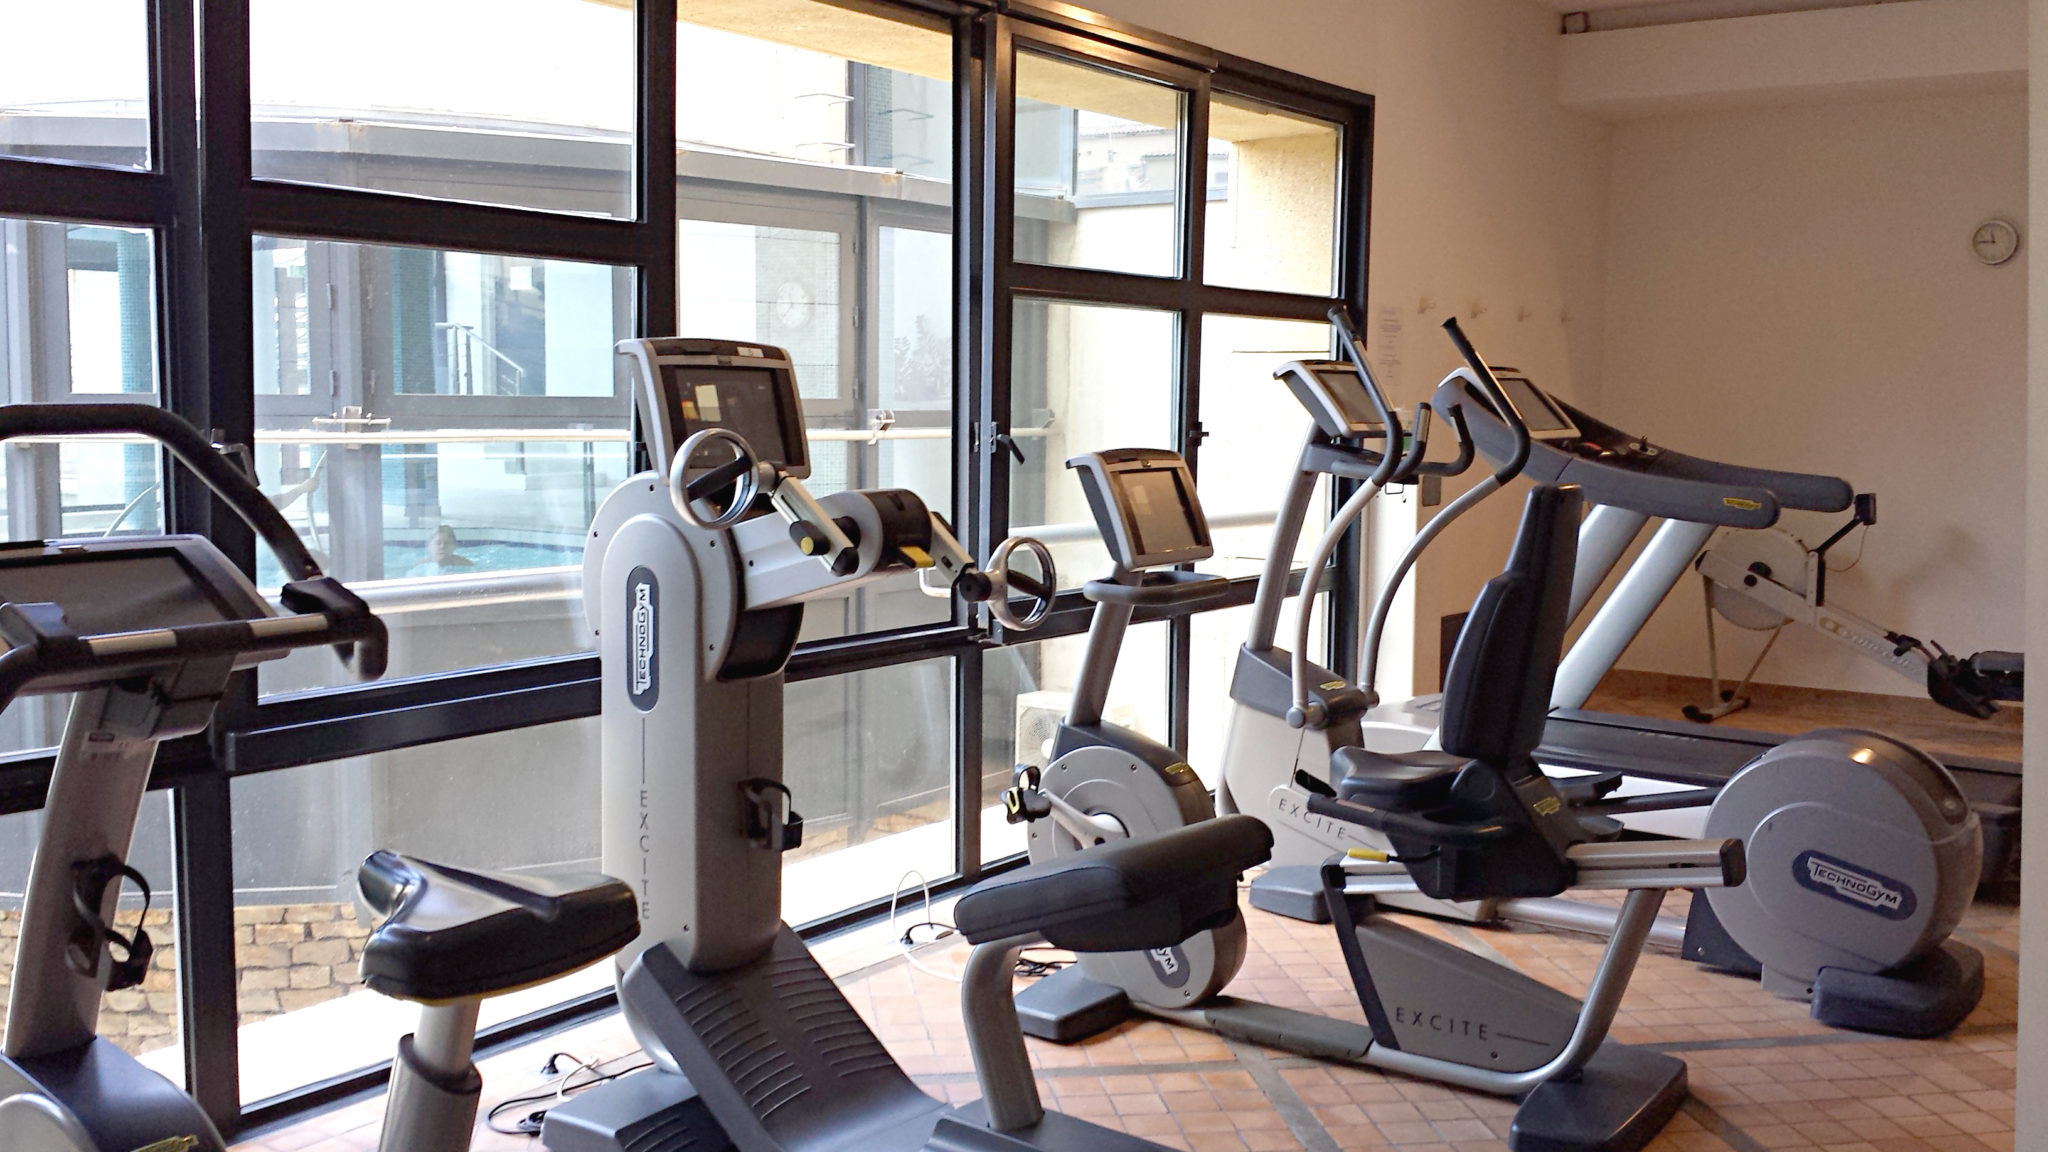 Journee_cocooning_aixenprovence_spa_thermes_sextius_salle_sport_cardio